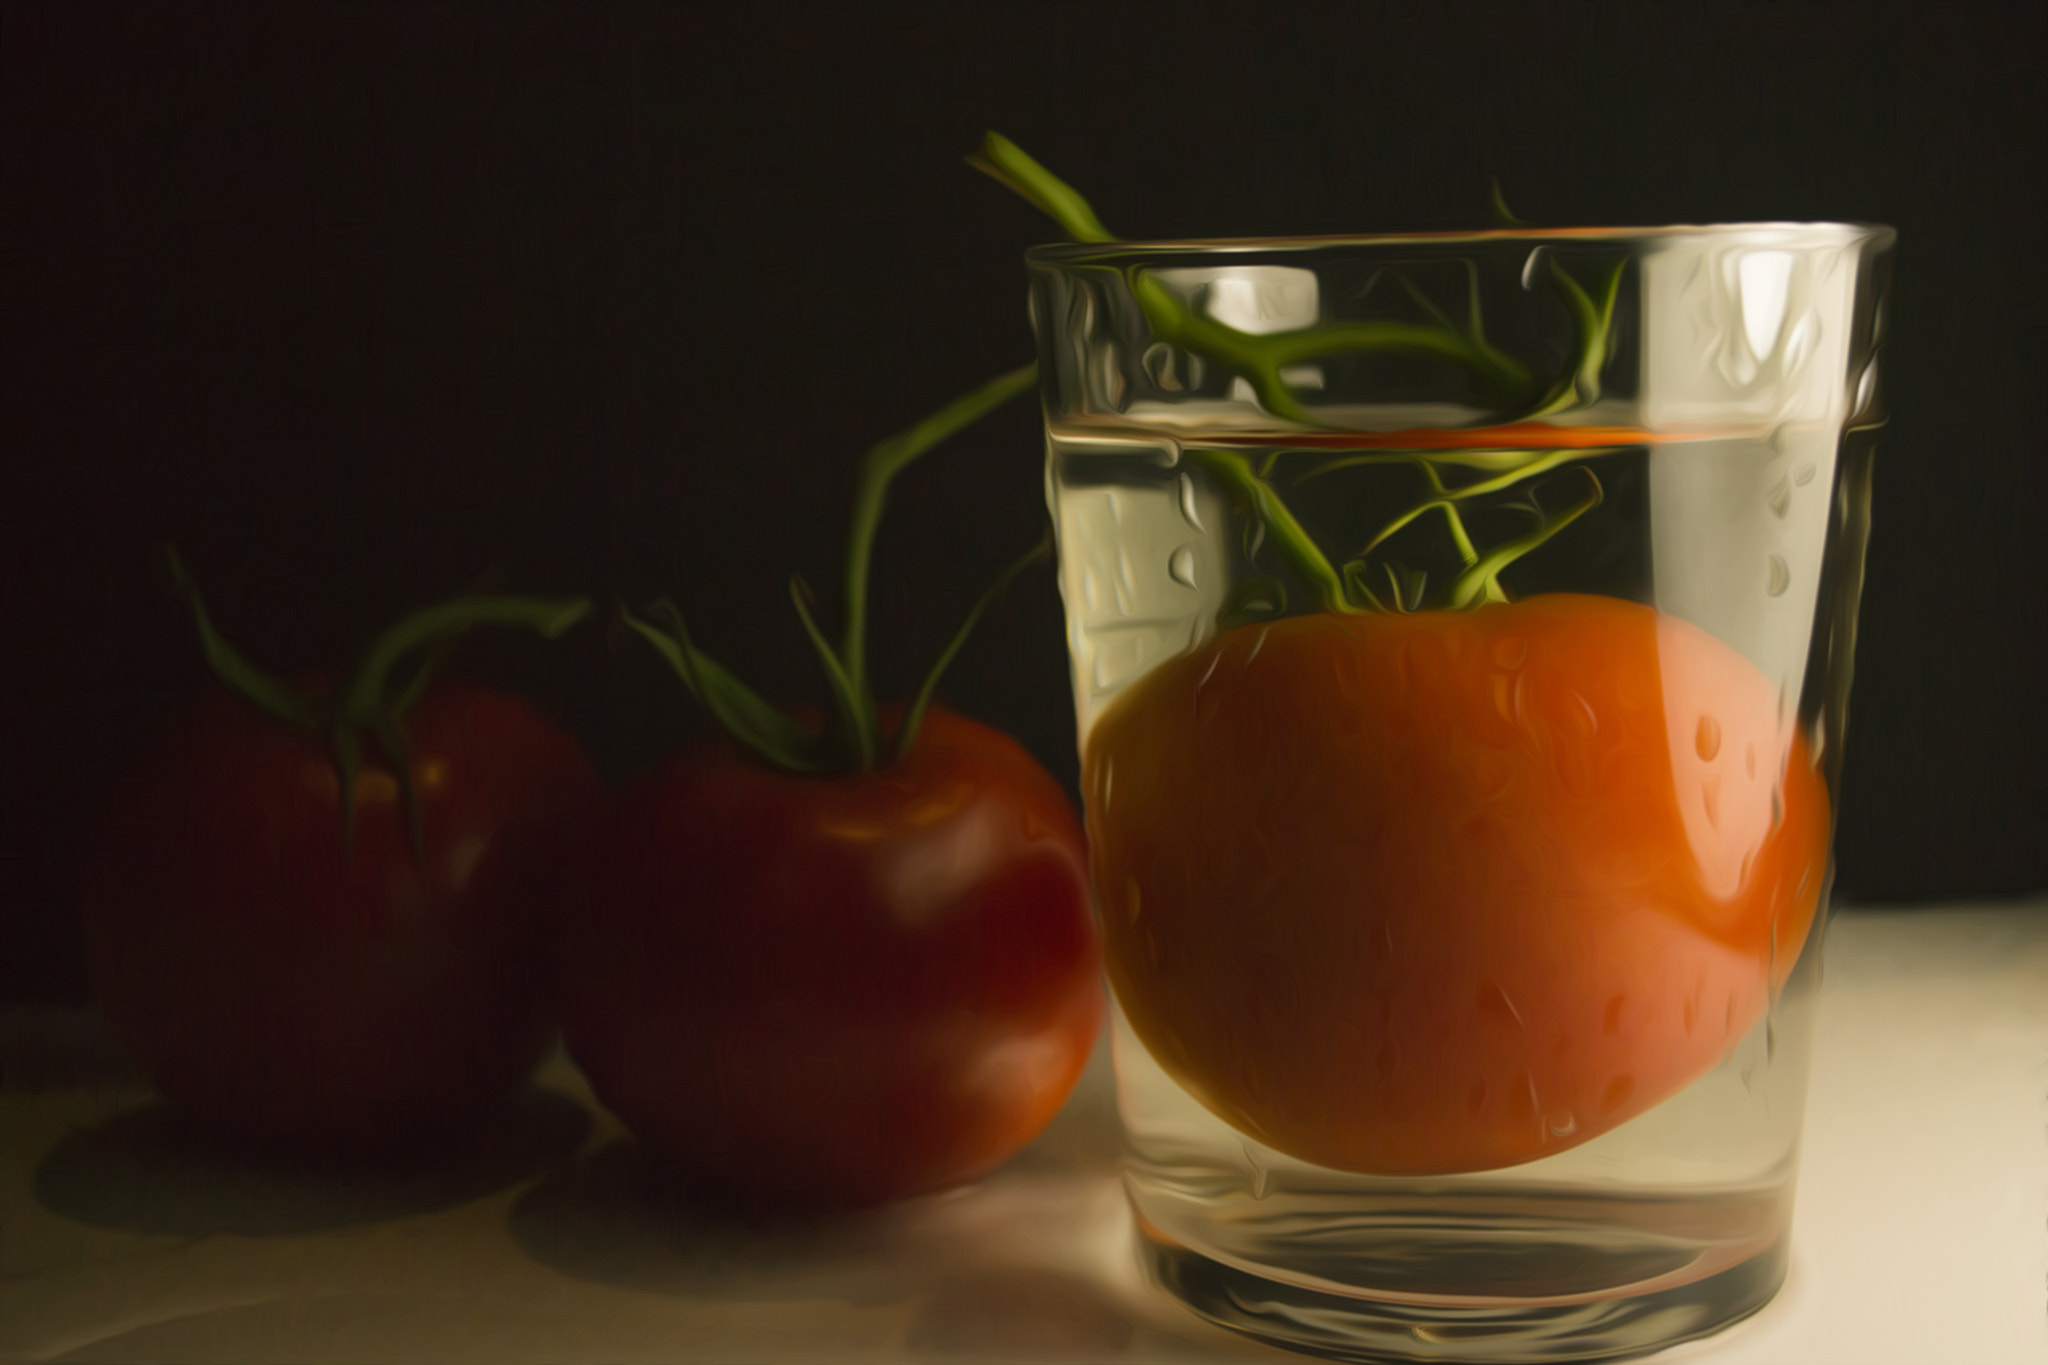 Photograph Tomates by Marcelo Berdasco on 500px